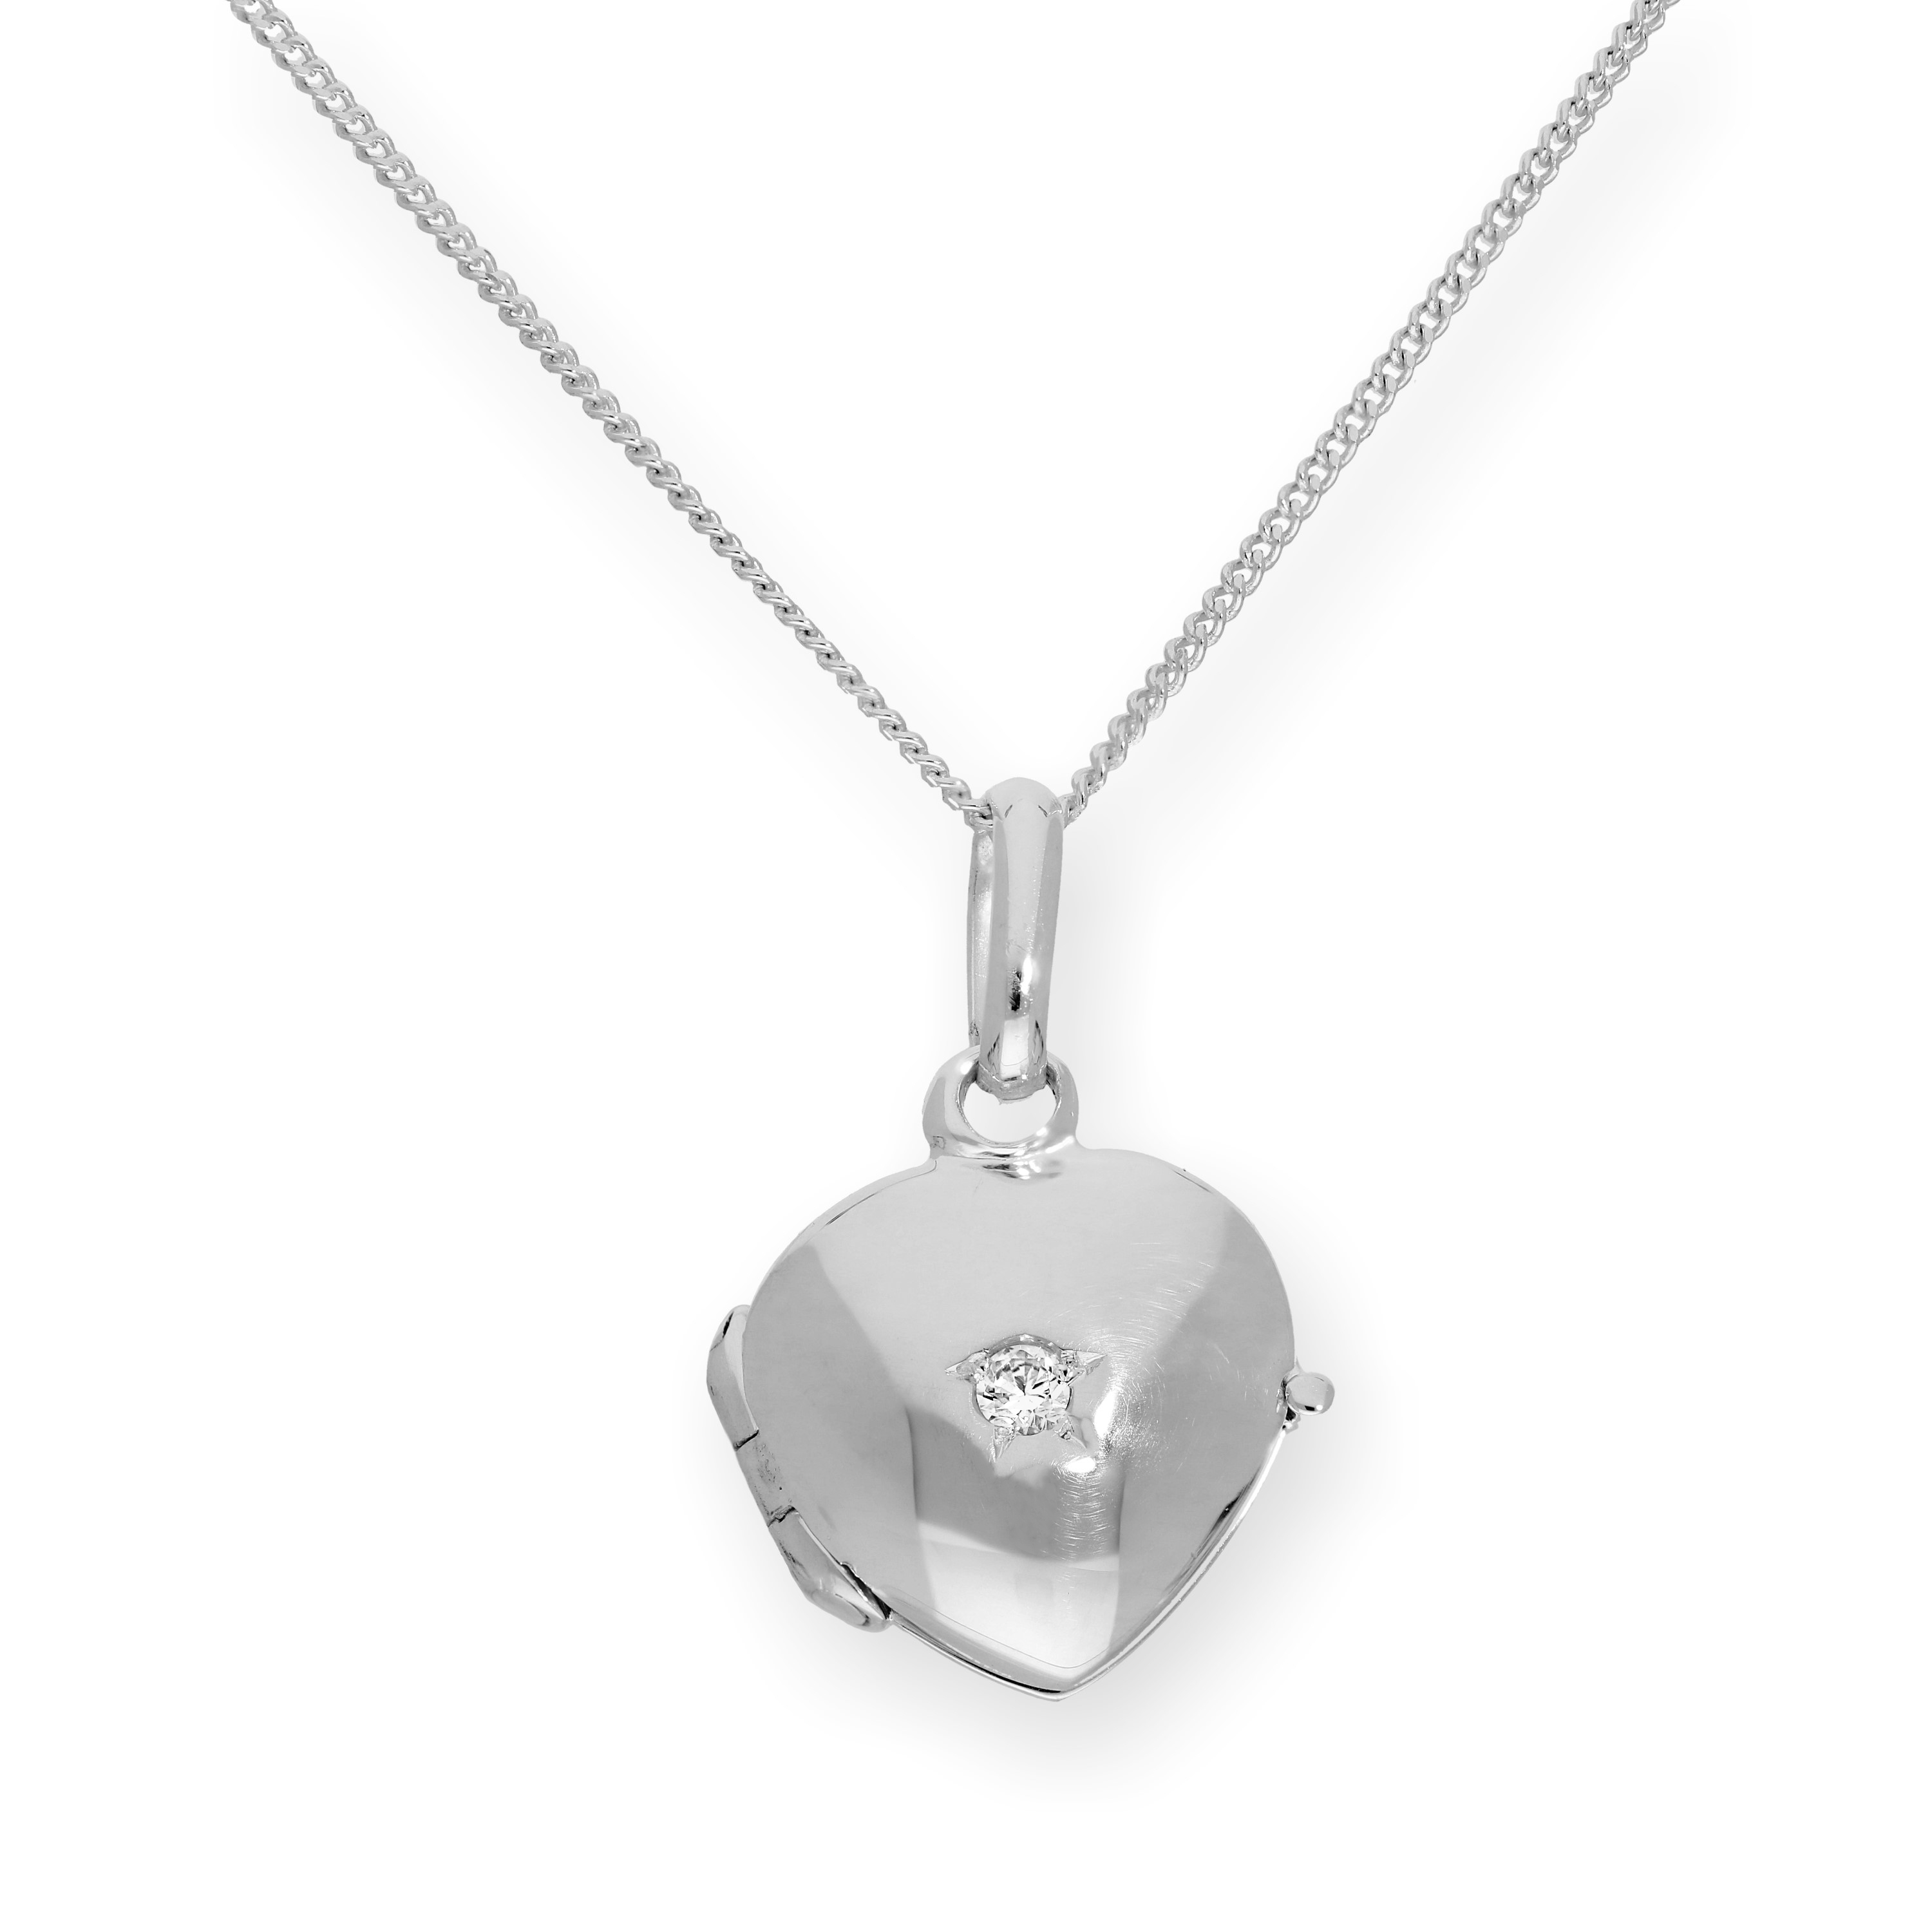 An image of Tiny Sterling Silver CZ Crystal Engravable Heart Locket on Chain 16 22 Inches